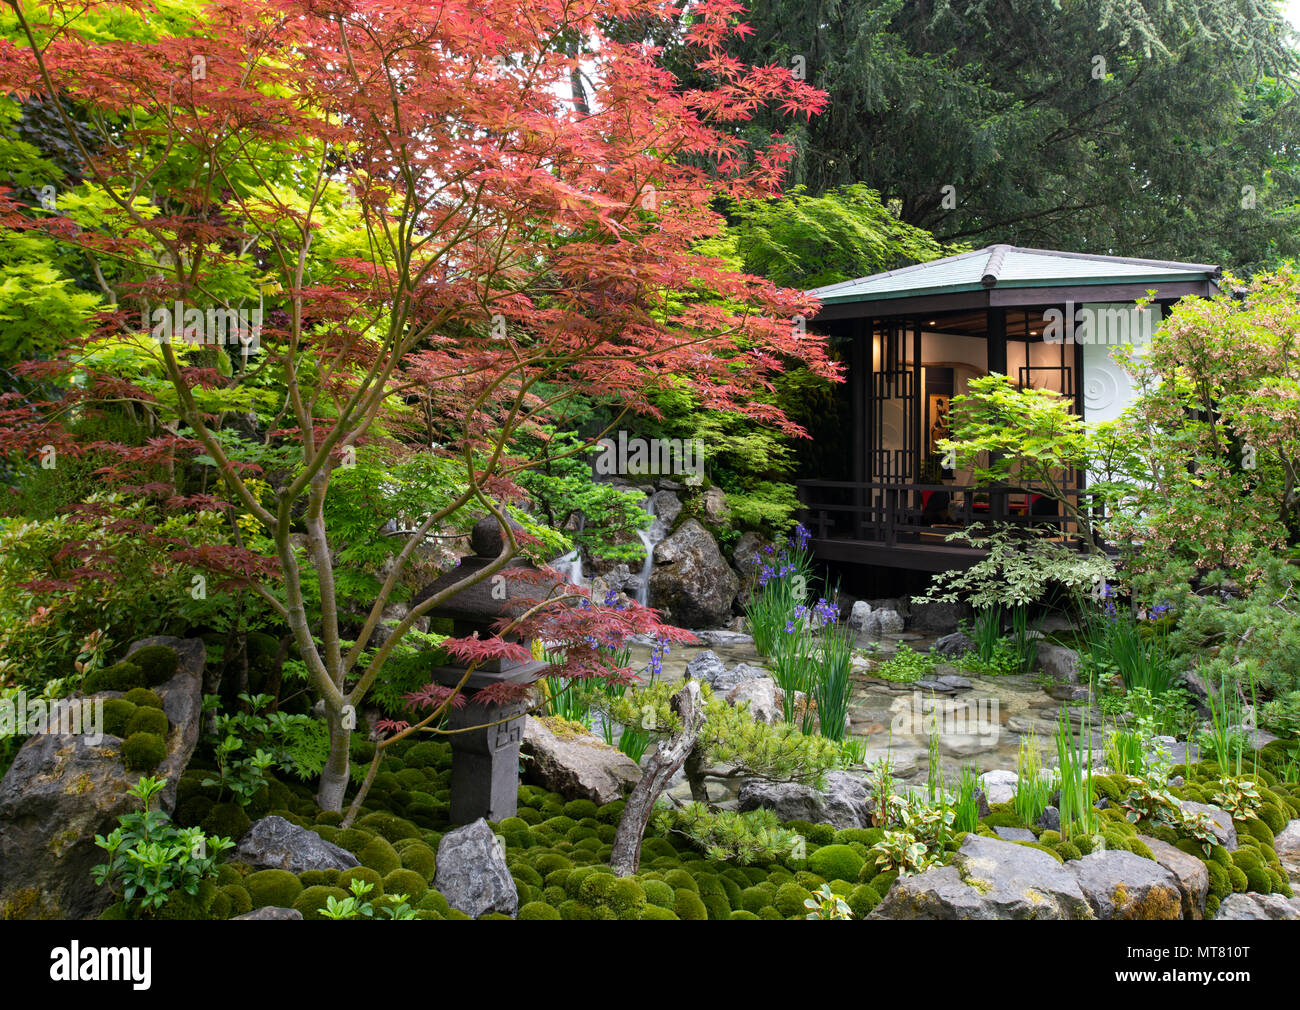 O-mo-te-na-shi no NIWA - The Hospitality Garden, a traditional Japanese design featuring a garden house surrouned by Acer trees designed by Ishihara K - Stock Image